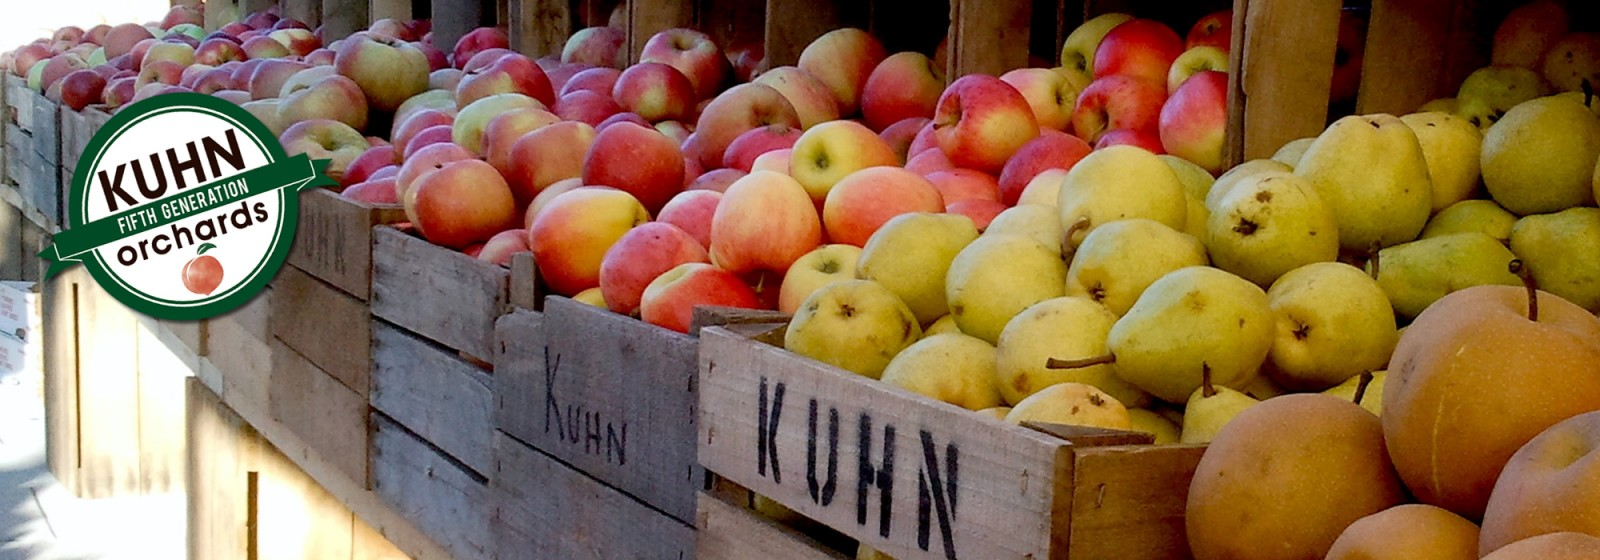 Farmers-Market-Apples-2